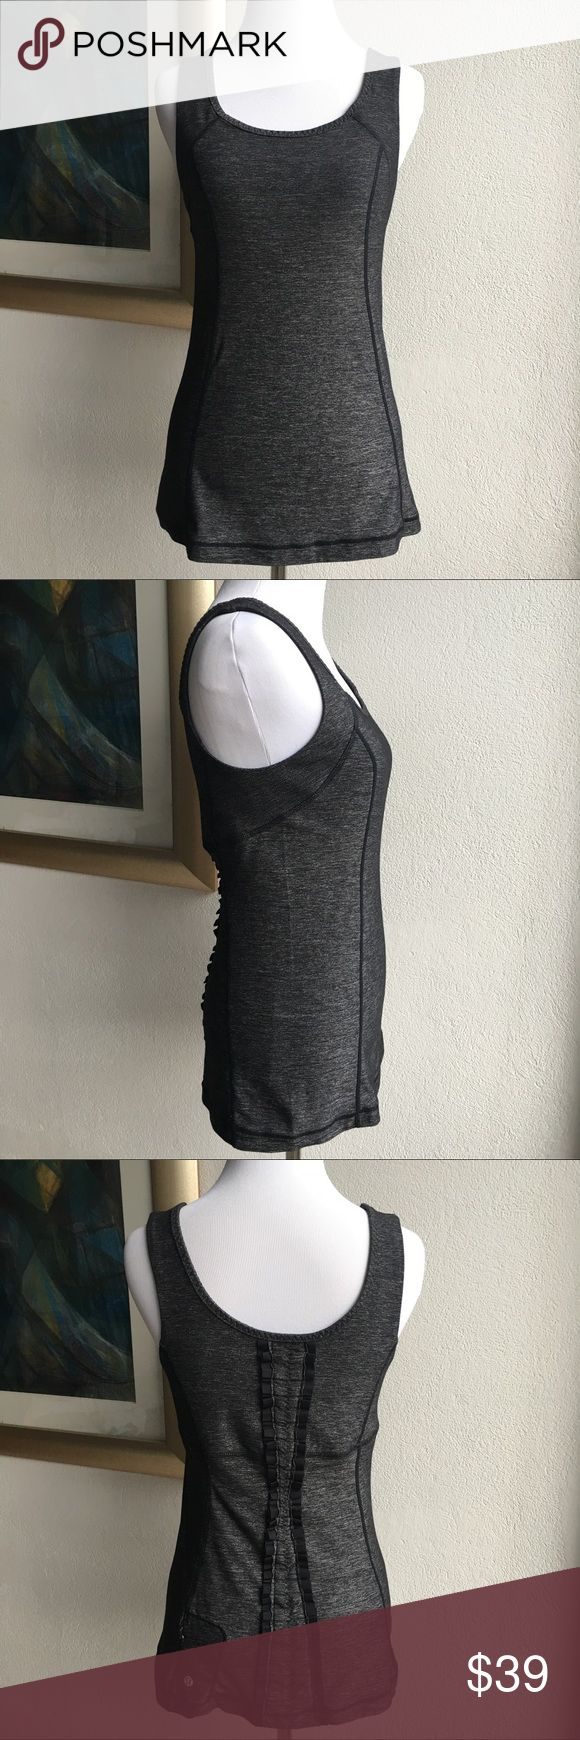 Lululemon Charcoal Gray Tank Top size 6 Preowned authentic Lululemon Charcoal Gray Tank Top size 6. Lightly worn. Has zippered back pocket. Please look at pictures for better reference. Thank you for looking and happy shopping!!! lululemon athletica Tops Tank Tops